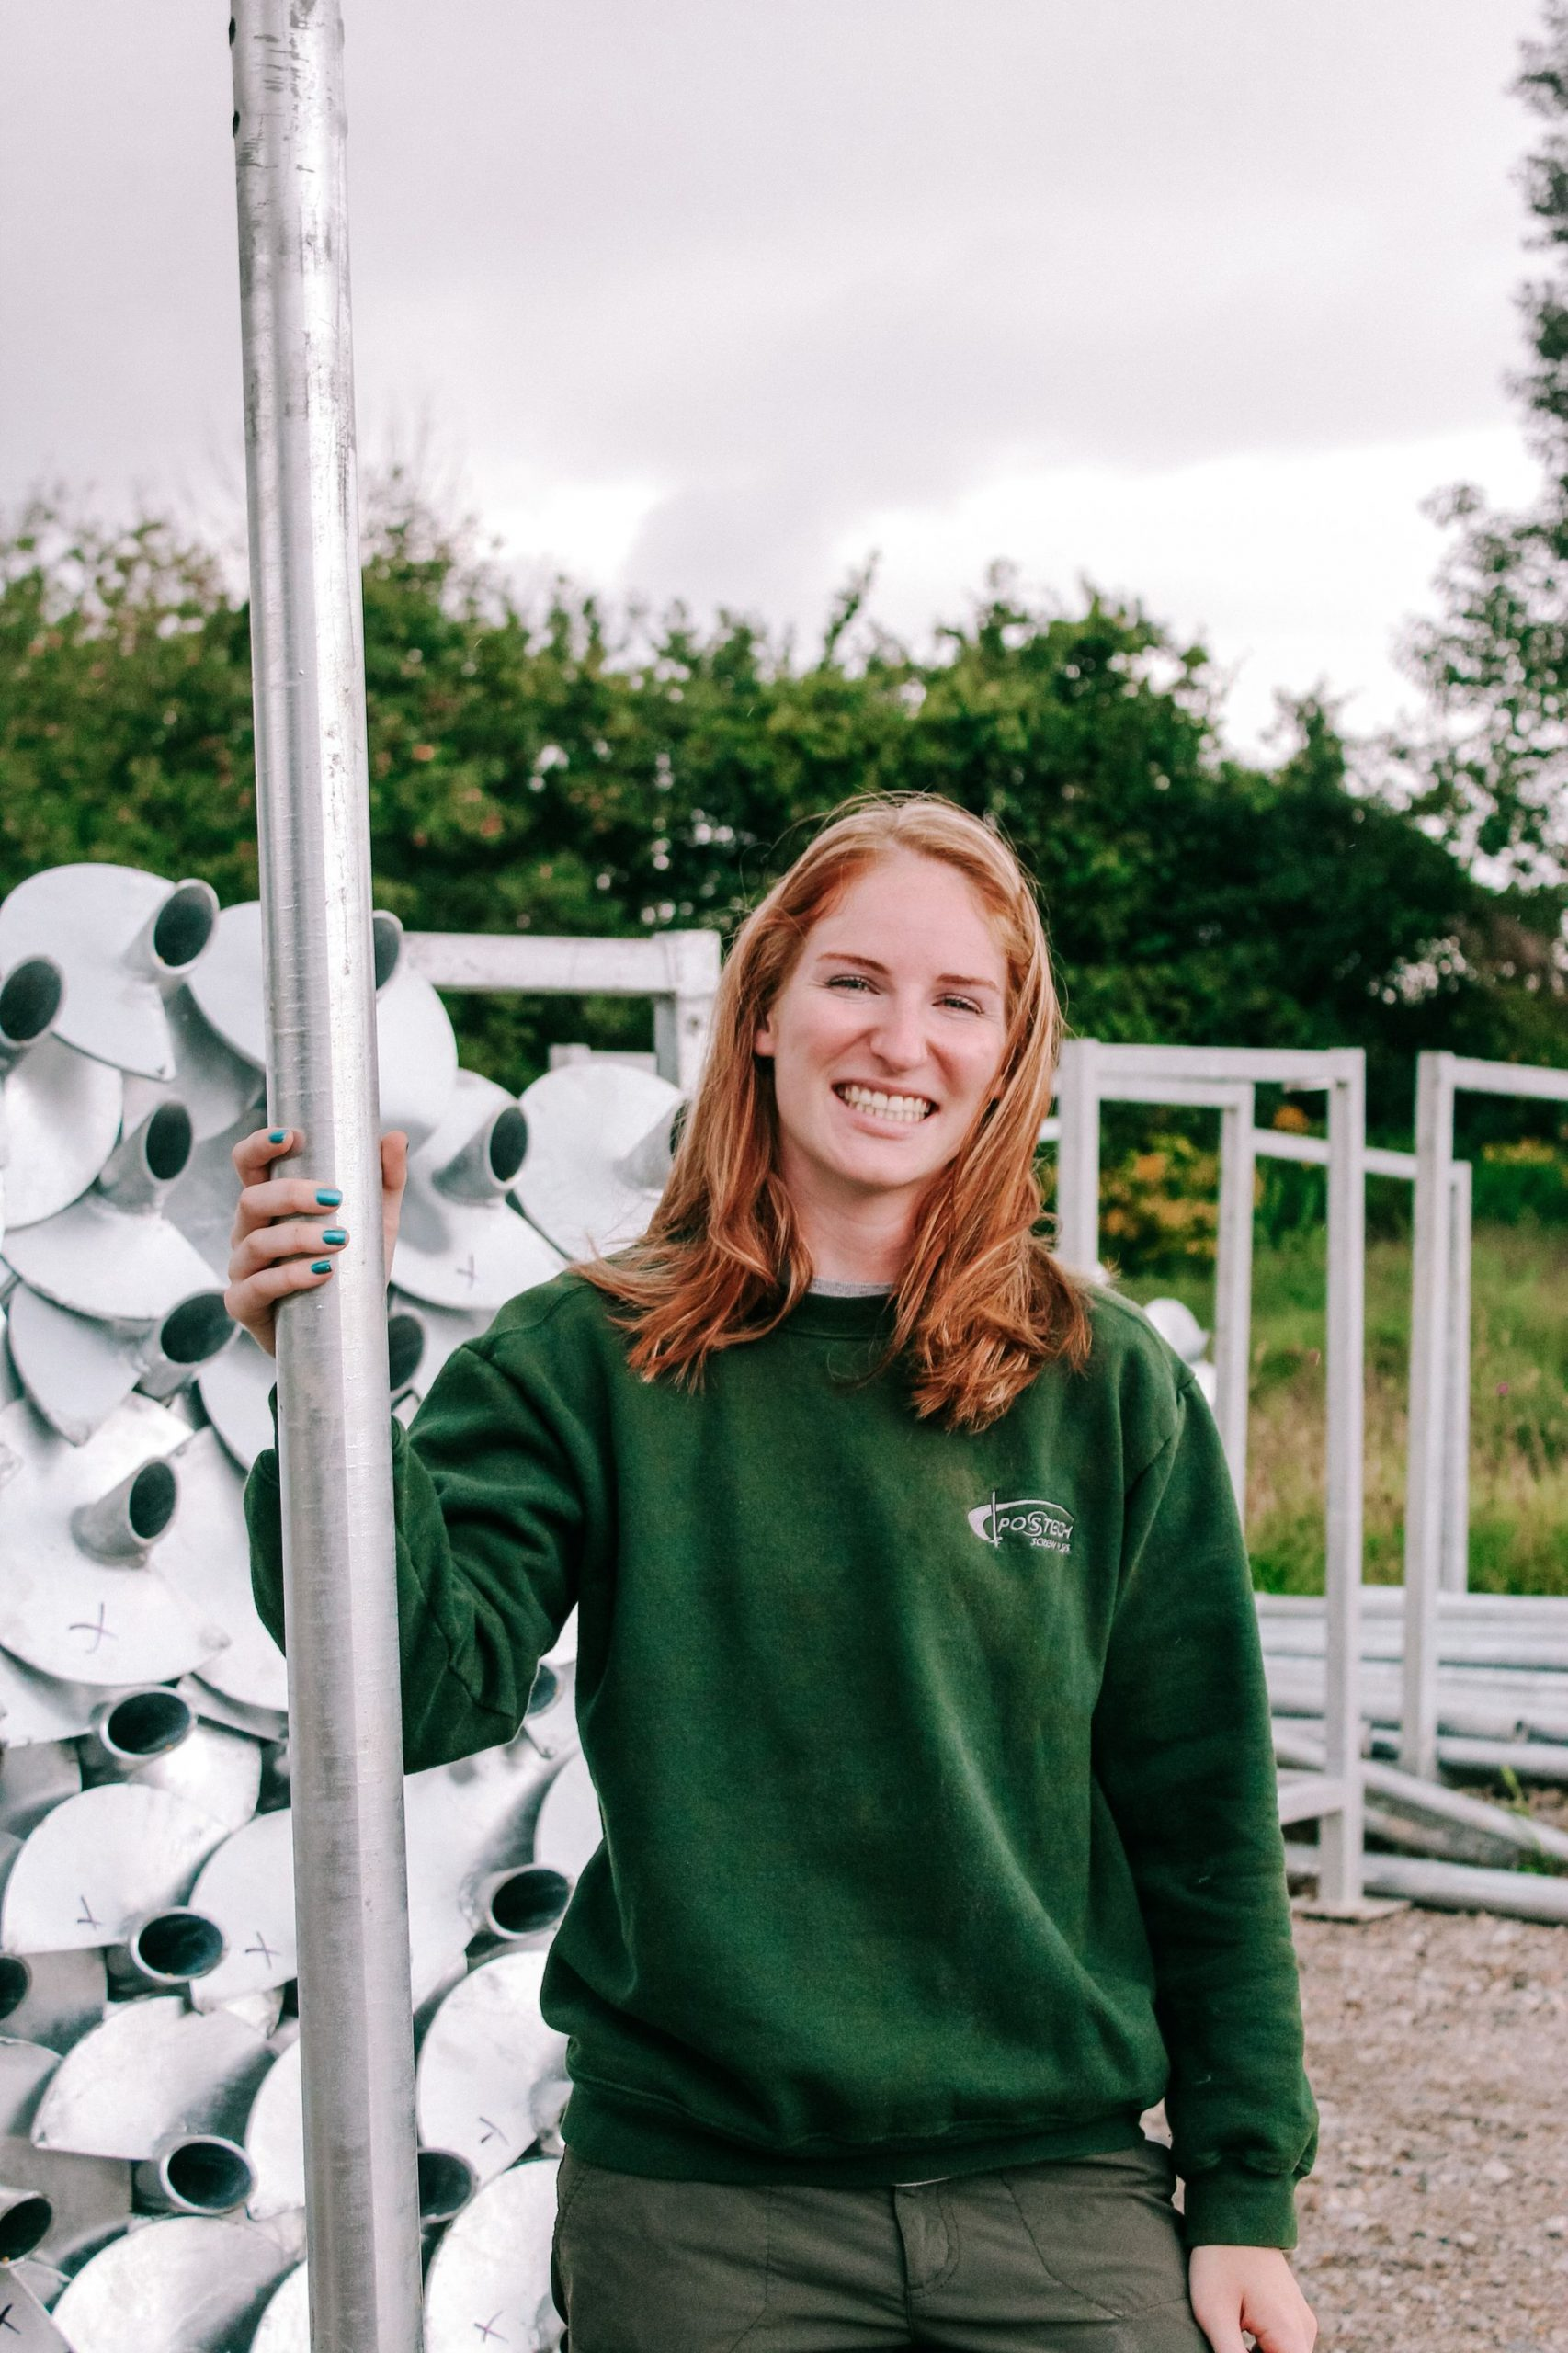 Lauren's smile is contagious as she loves coming into work every day to install Postech Piles!